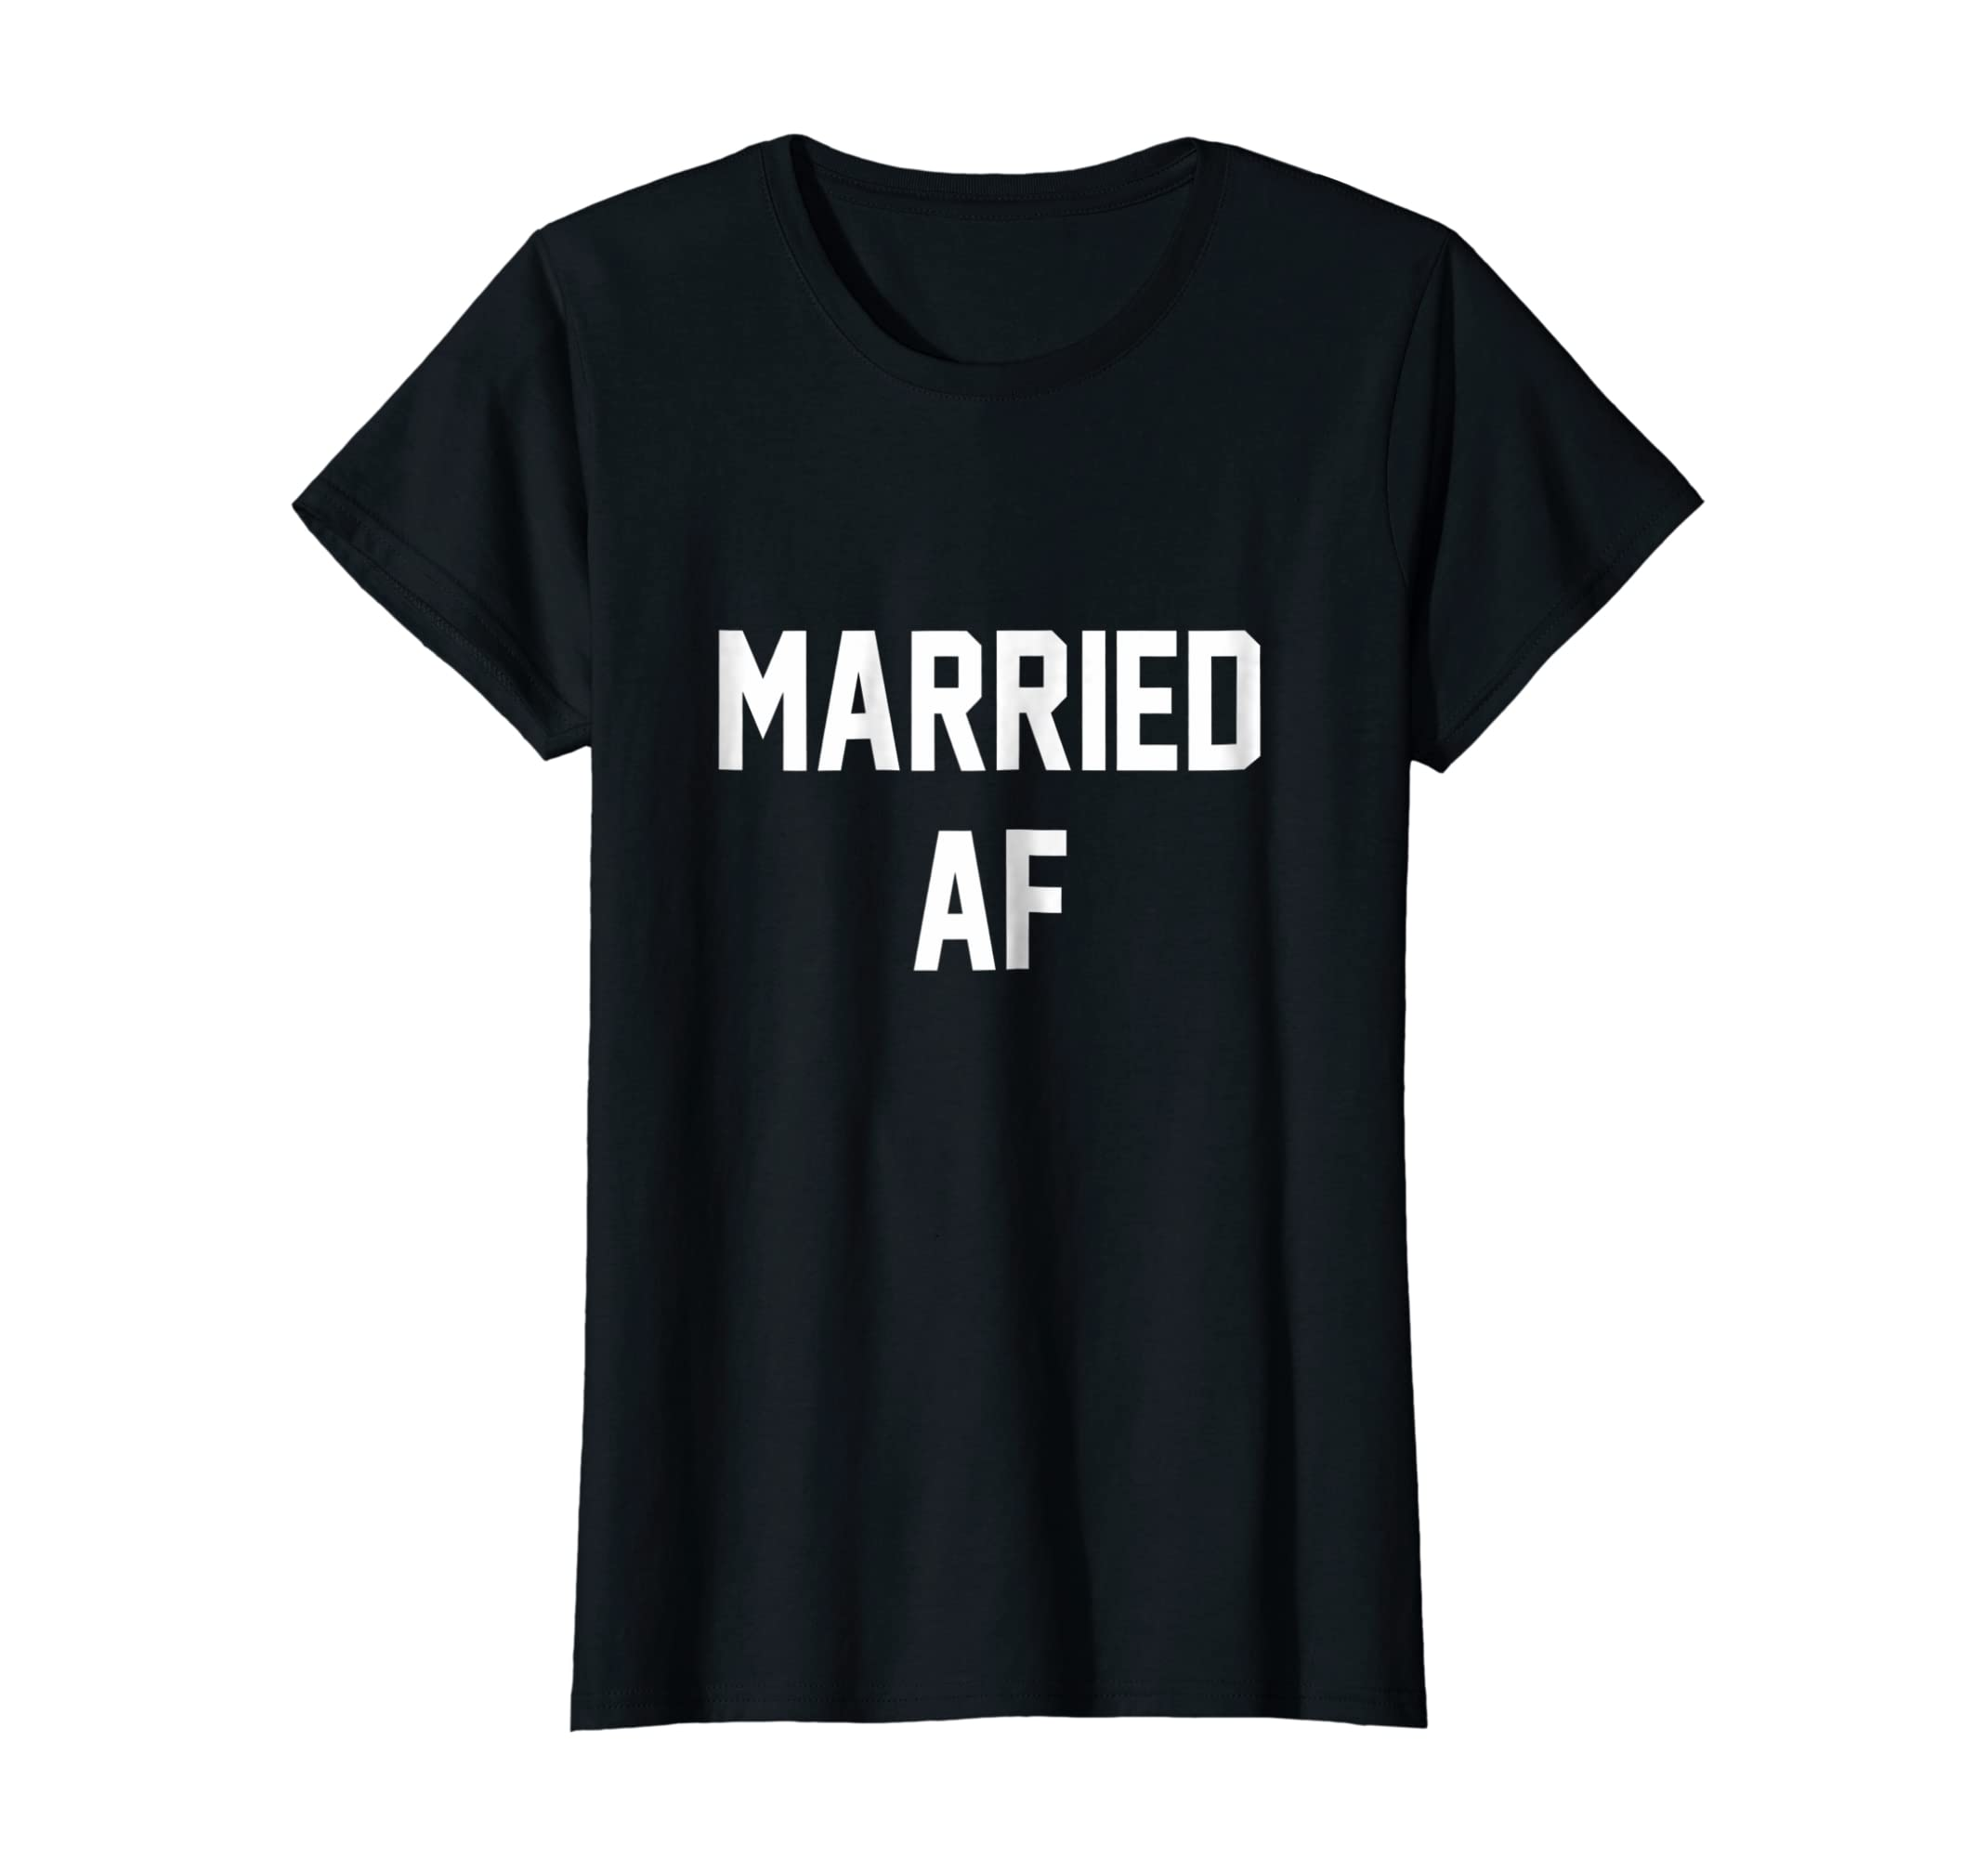 e99f37c79145 Amazon.com  Womens Married AF Shirt. Married AF. Just Married Shirt.   Clothing